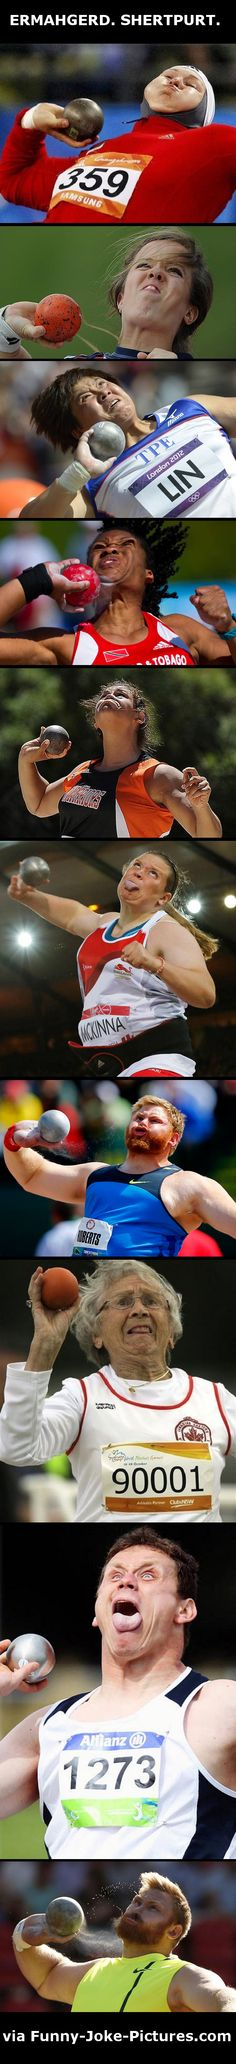 Funny shot put collection